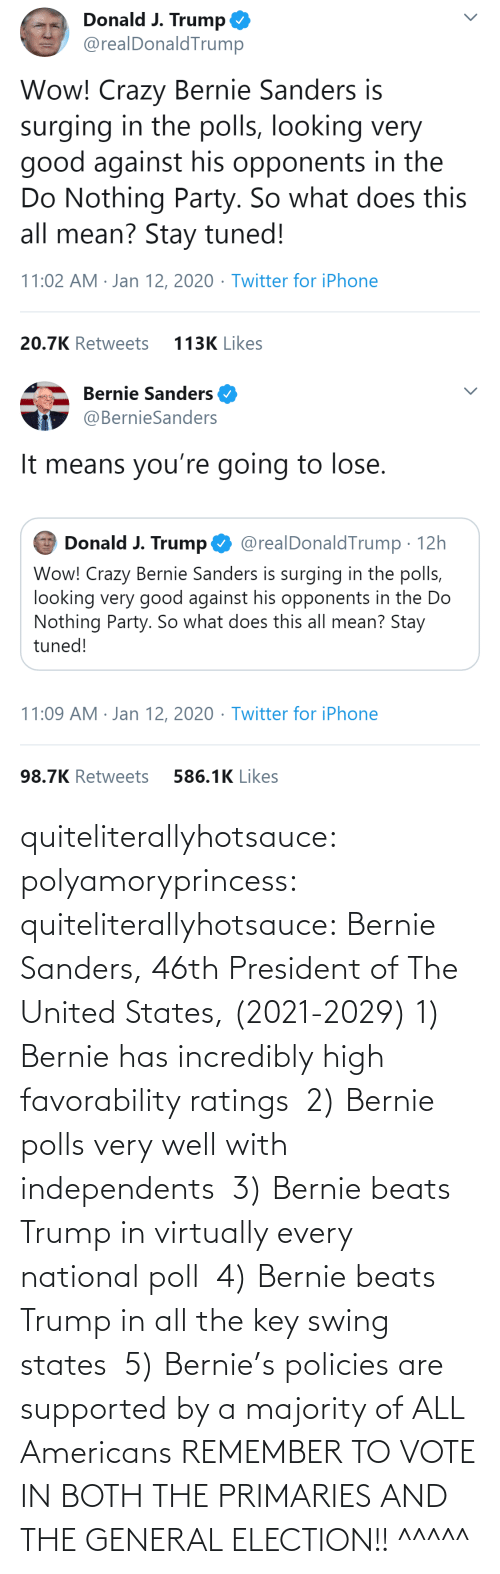 Bernie Sanders, Tumblr, and Beats: quiteliterallyhotsauce:  polyamoryprincess:  quiteliterallyhotsauce:   Bernie Sanders, 46th President of The United States, (2021-2029)    1) Bernie has incredibly high favorability ratings  2) Bernie polls very well with independents  3) Bernie beats Trump in virtually every national poll  4) Bernie beats Trump in all the key swing states  5) Bernie's policies are supported by a majority of ALL Americans    REMEMBER TO VOTE IN BOTH THE PRIMARIES AND THE GENERAL ELECTION!!  ^^^^^